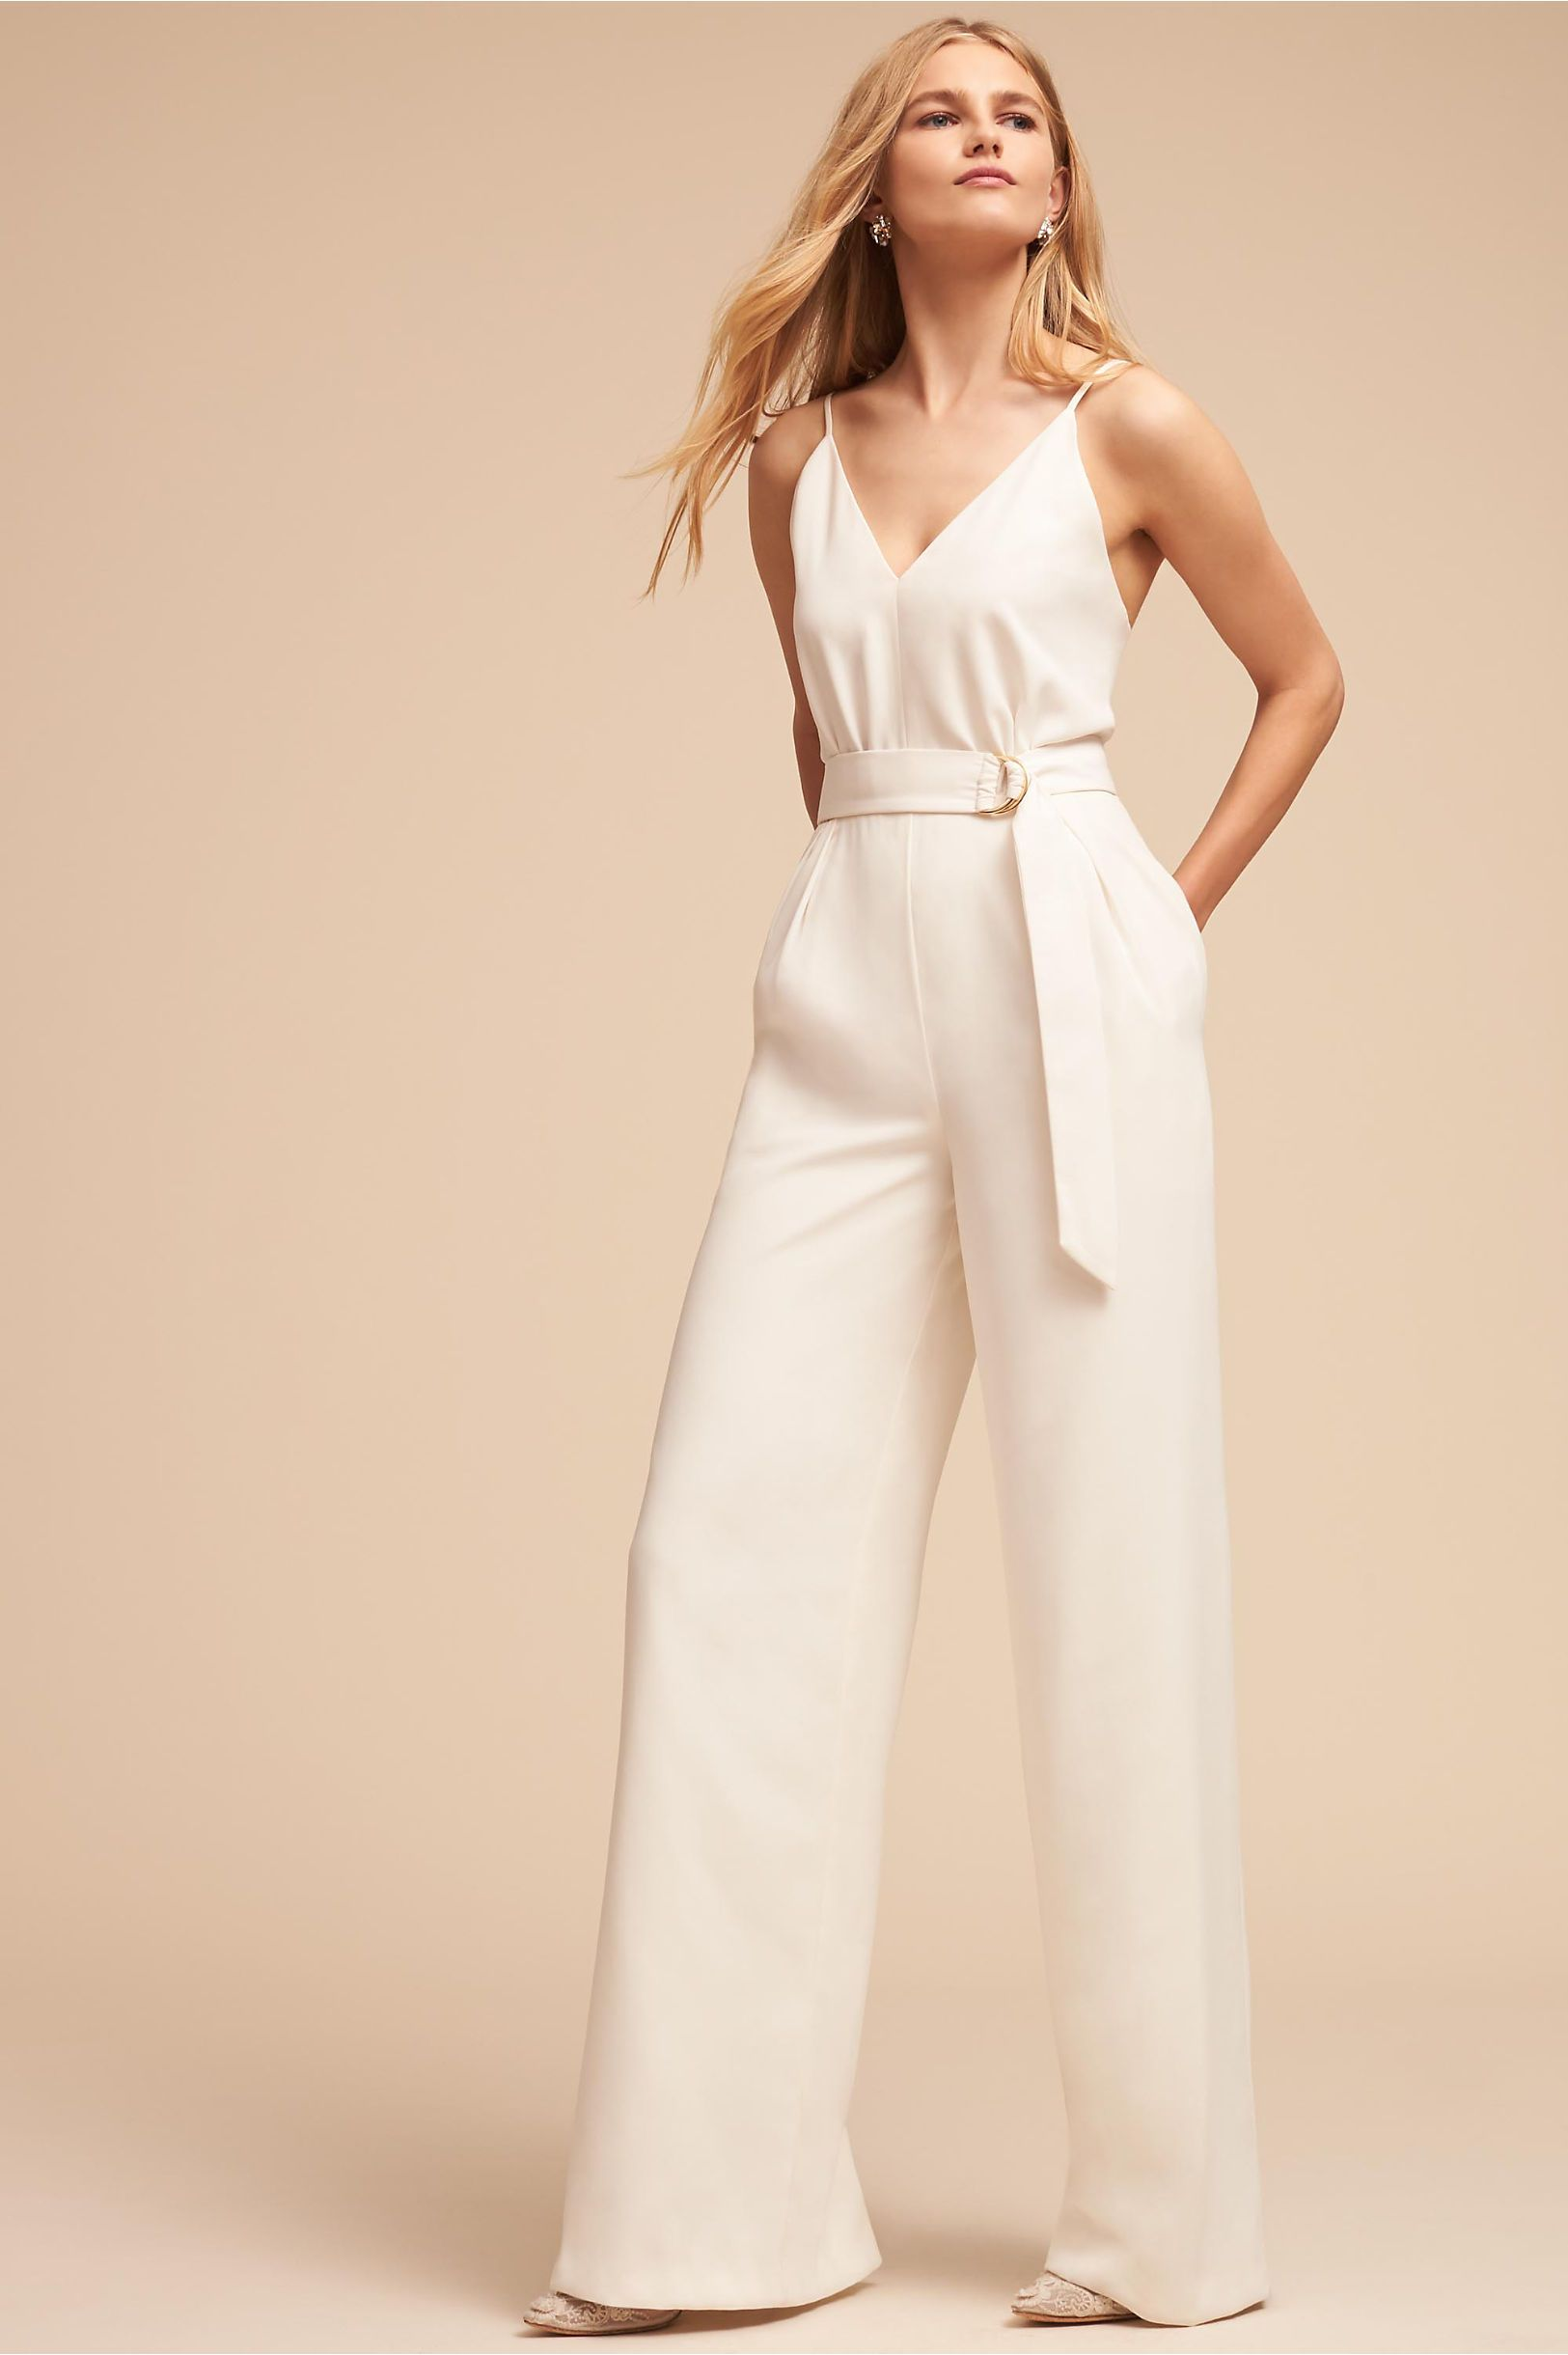 Bhldns Jill Jill Stuart Isla Jumpsuit In Ivory Products Bridal